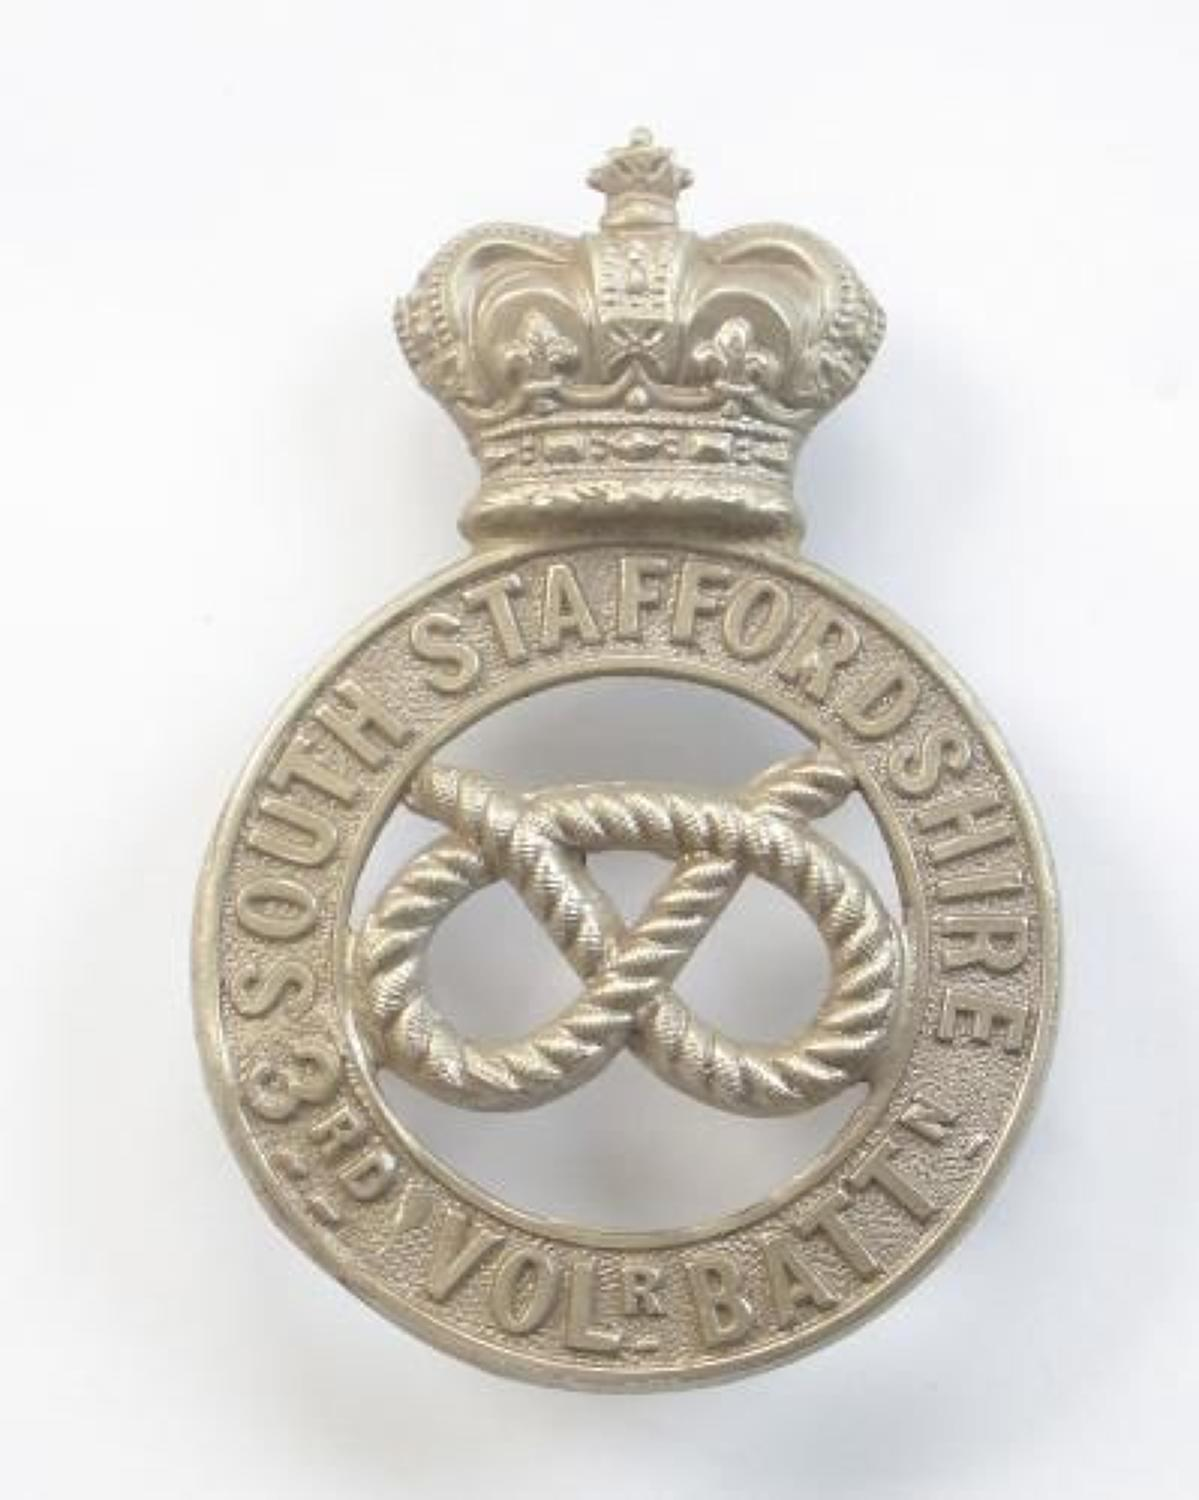 3rd VB South Staffordshire Regiment Victorian OR's glengarry badge c